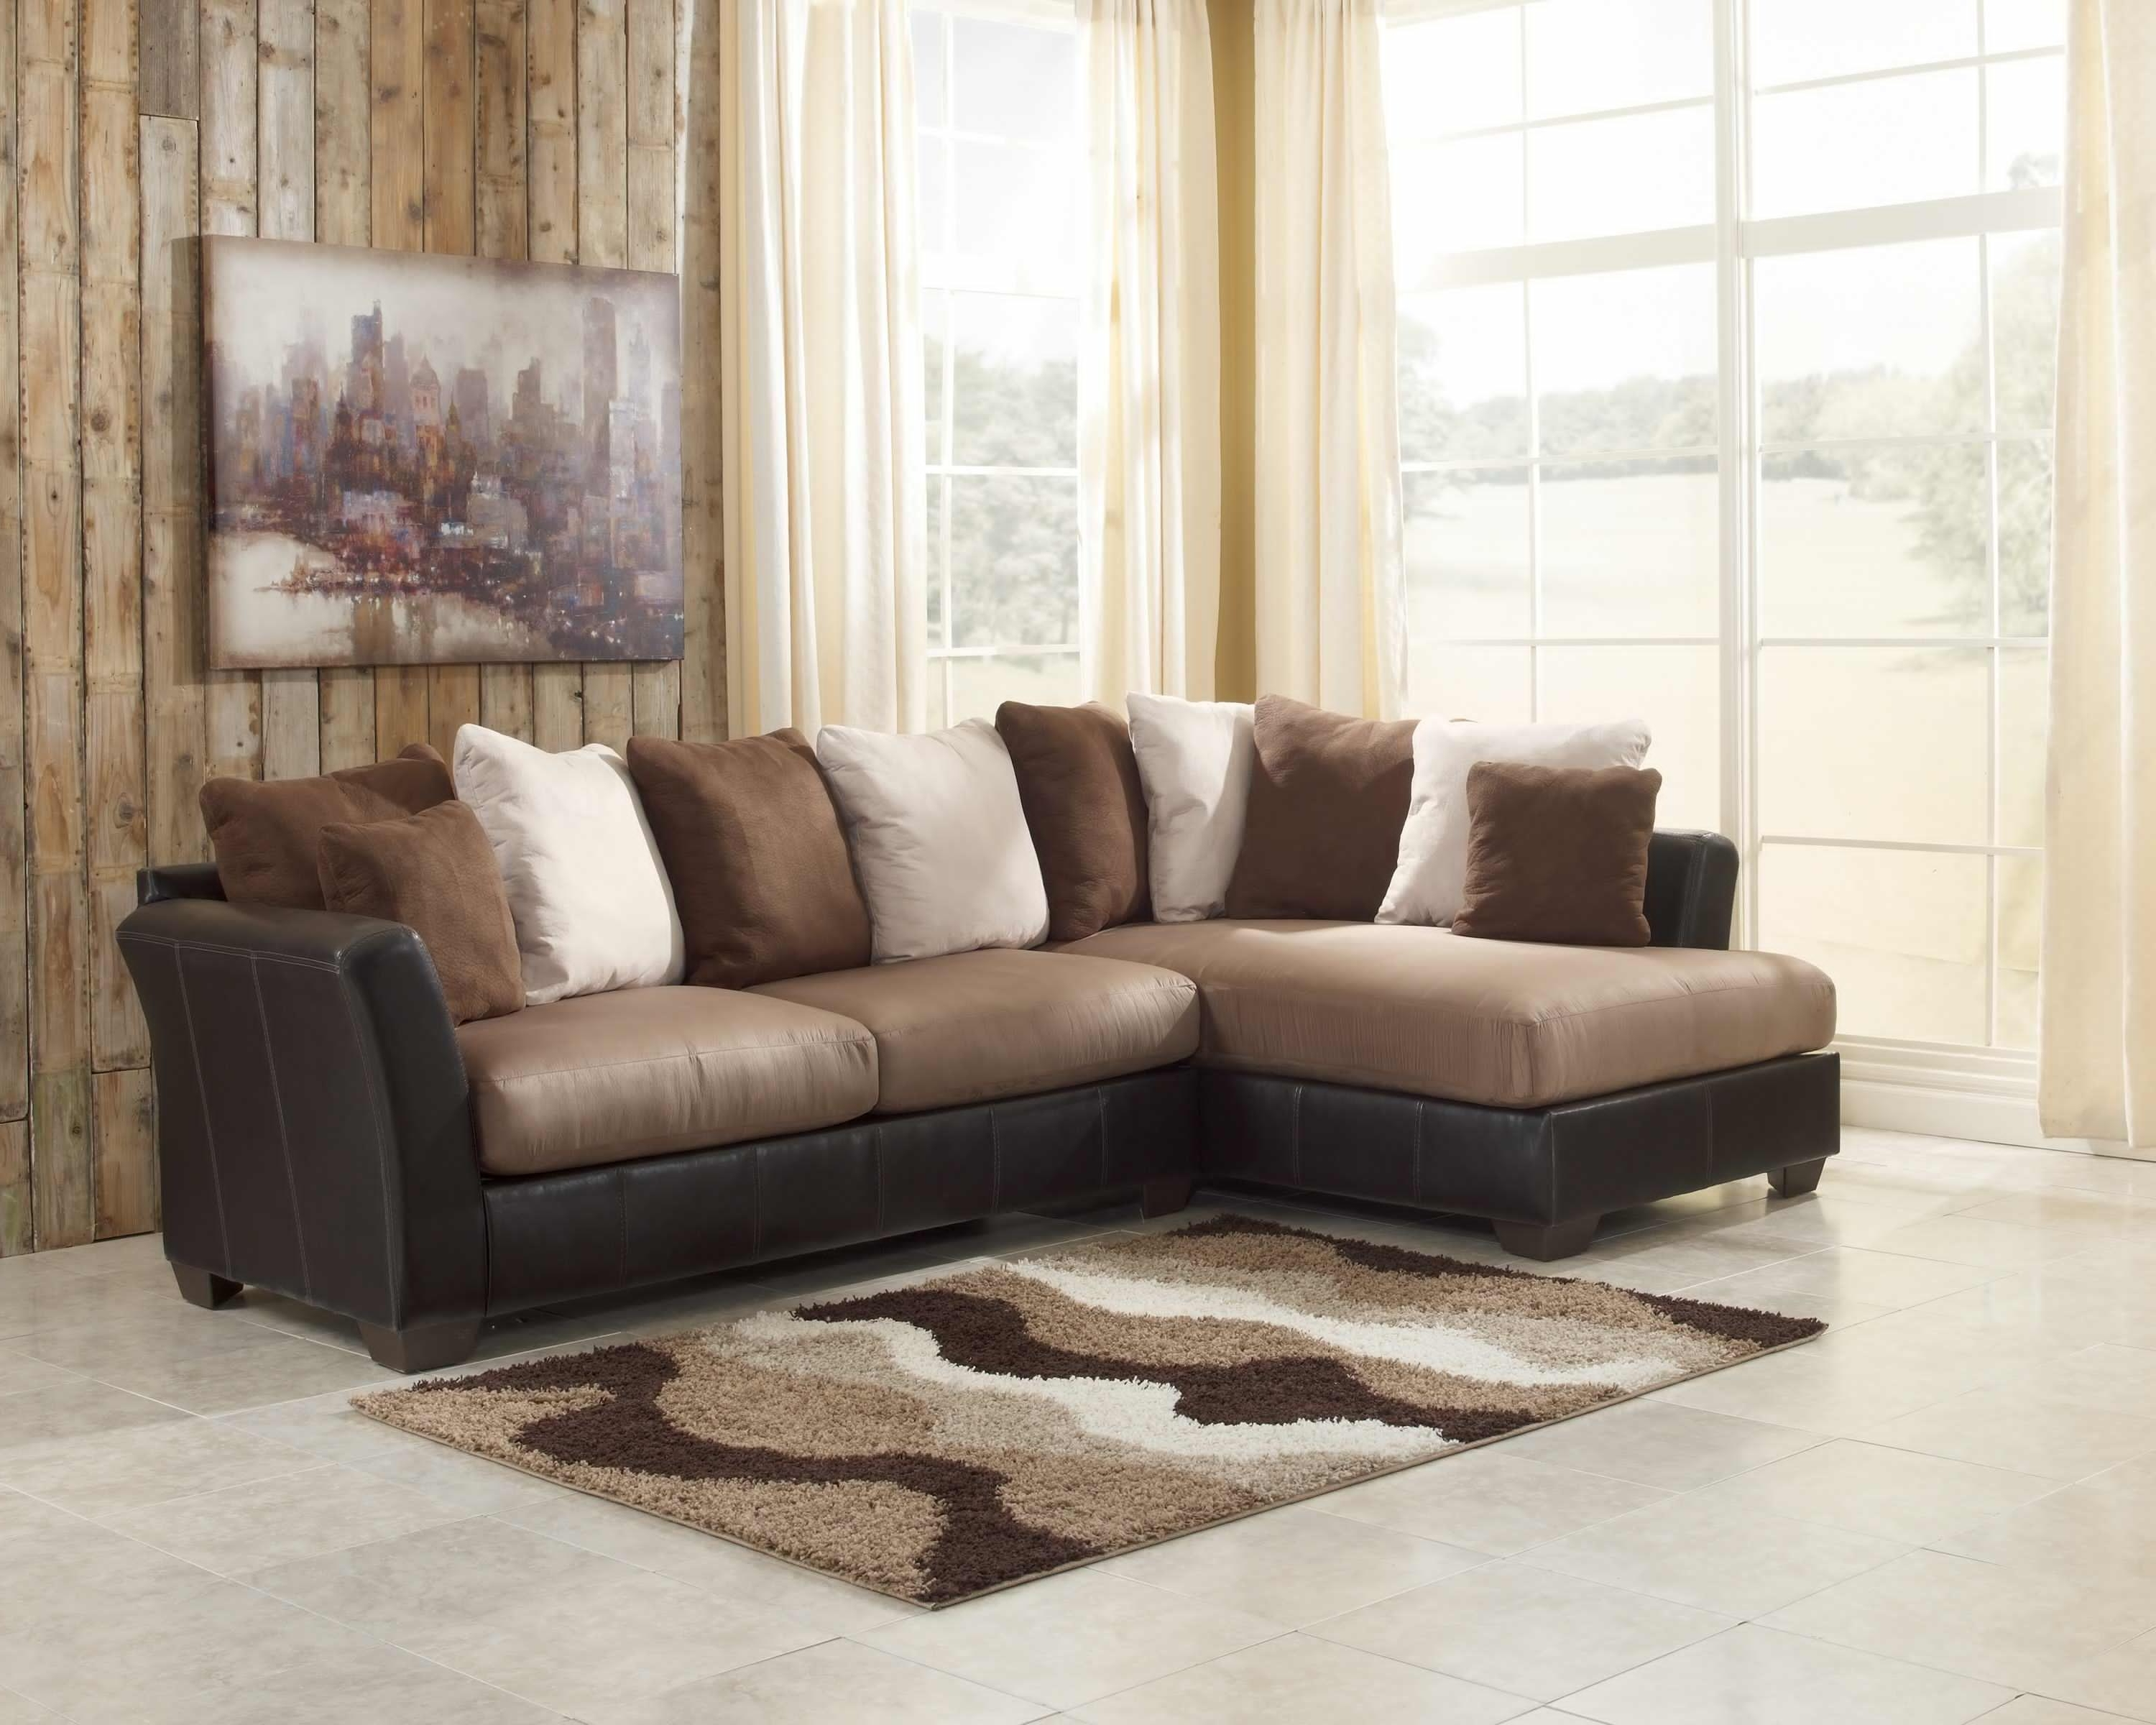 2 Piece Sectionals With Chaise Throughout Fashionable Sectional Sofa Design: Two Piece Sectional Sofa Chaise Leather (View 14 of 15)